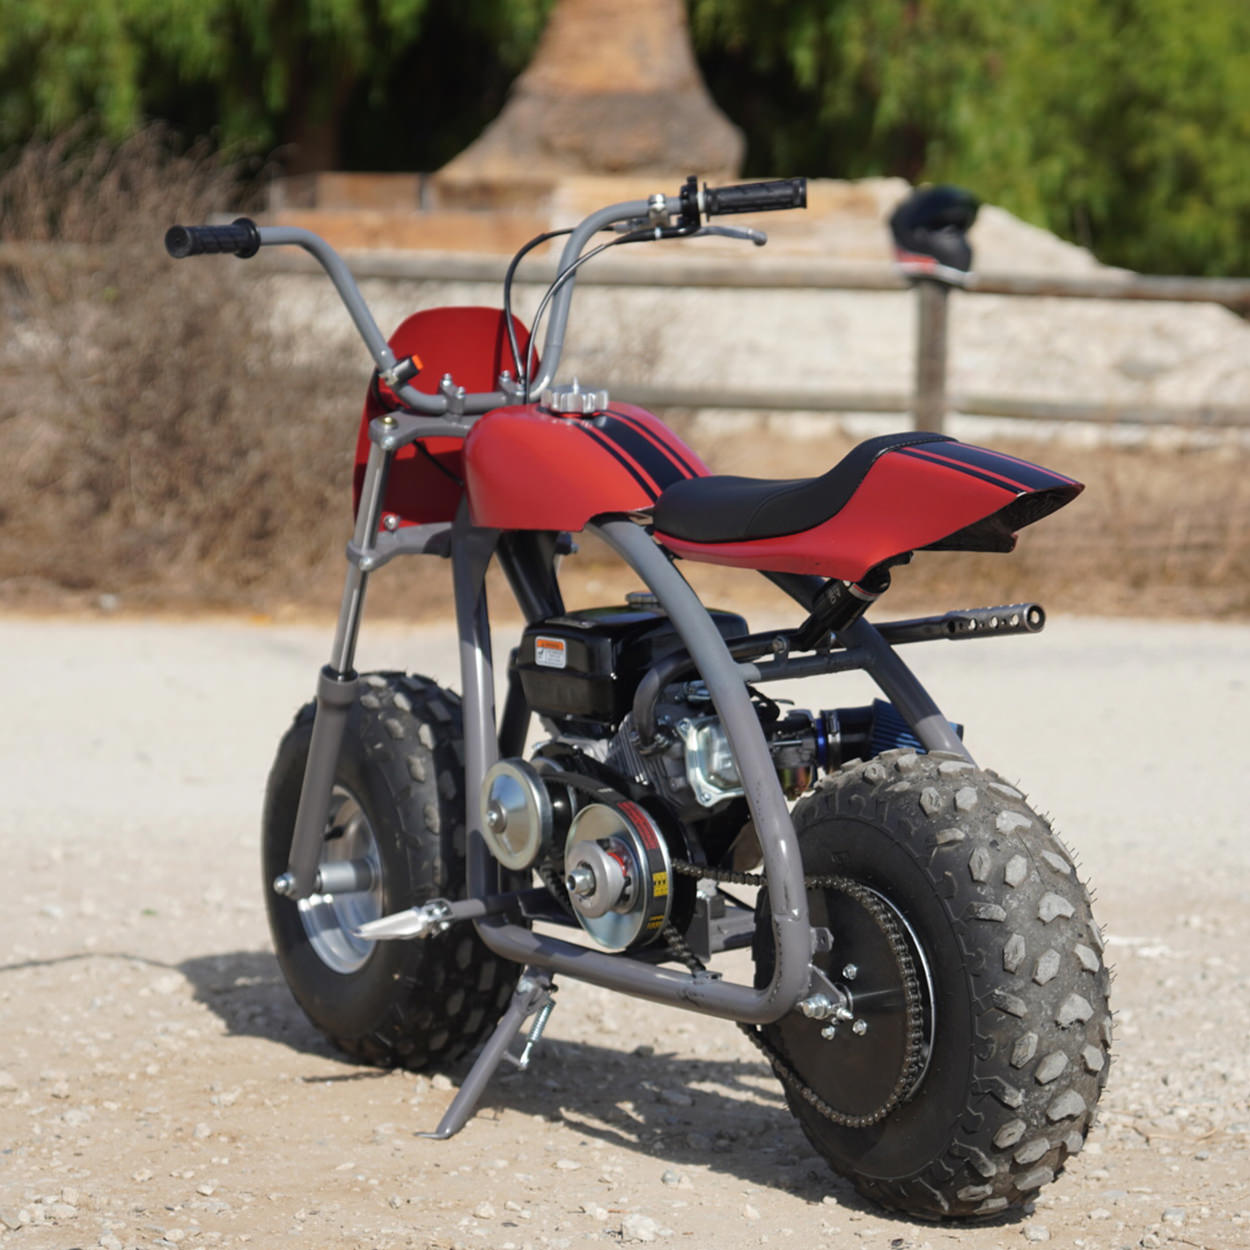 Coleman BT200X mini bike custom by The Speed Merchant